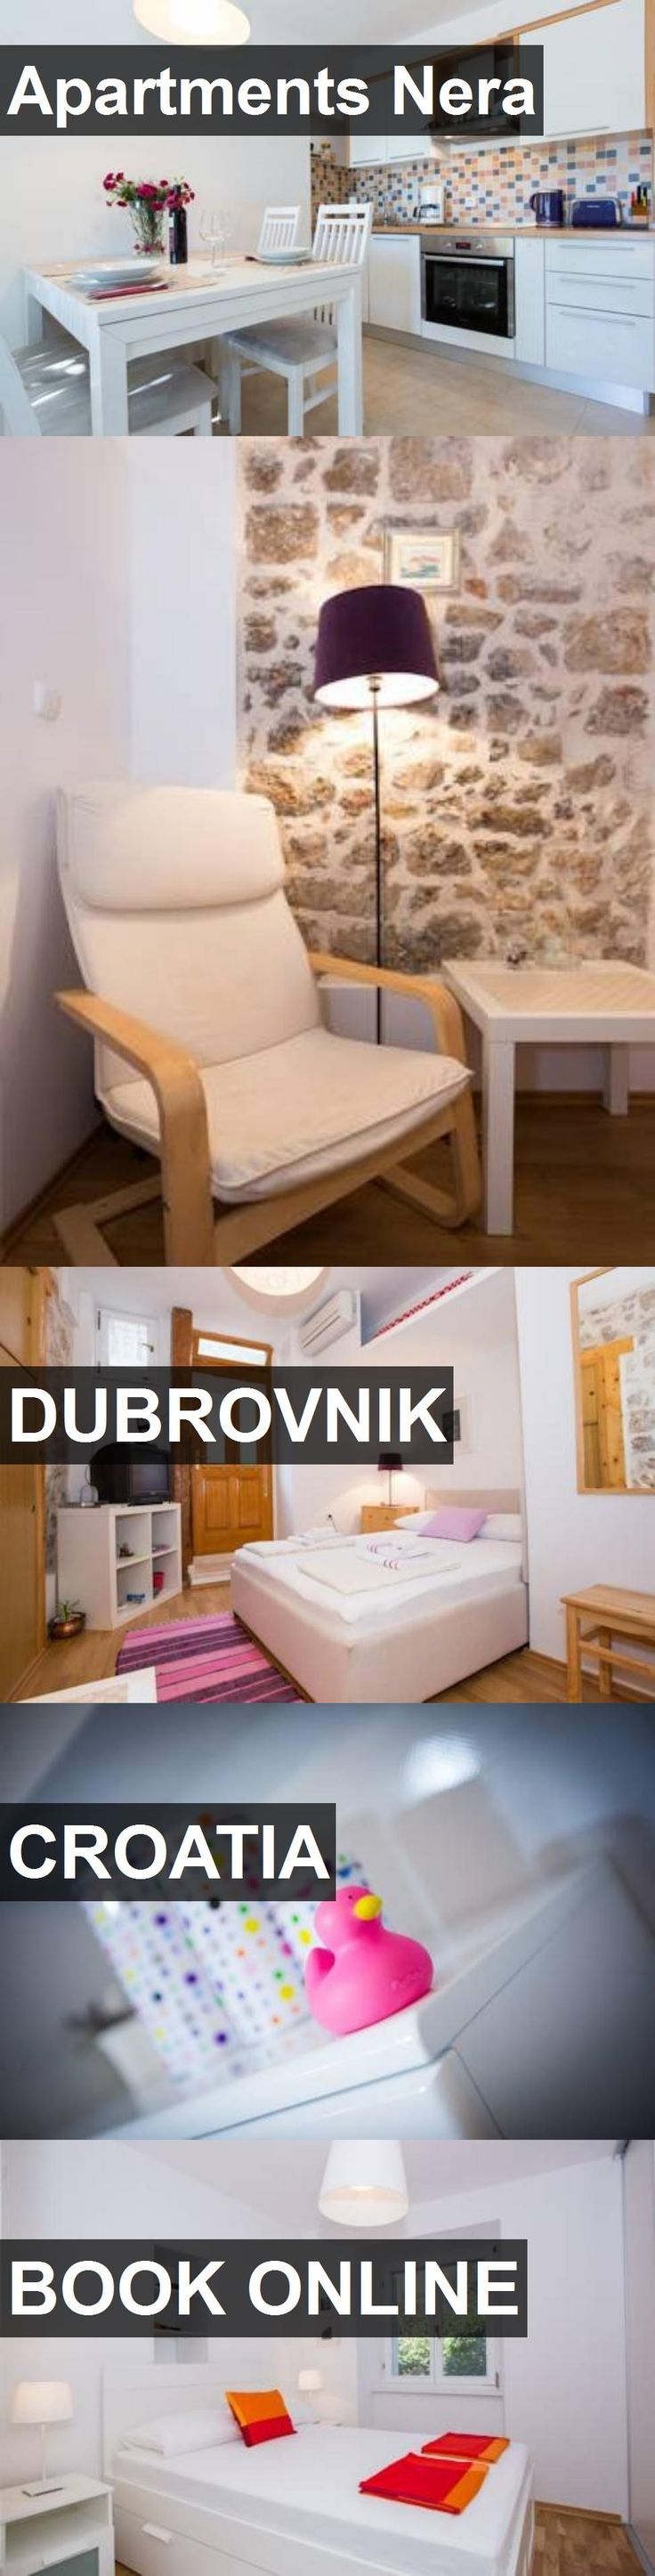 Hotel Apartments Nera in Dubrovnik, Croatia. For more information, photos, reviews and best prices please follow the link. #Croatia #Dubrovnik #ApartmentsNera #hotel #travel #vacation